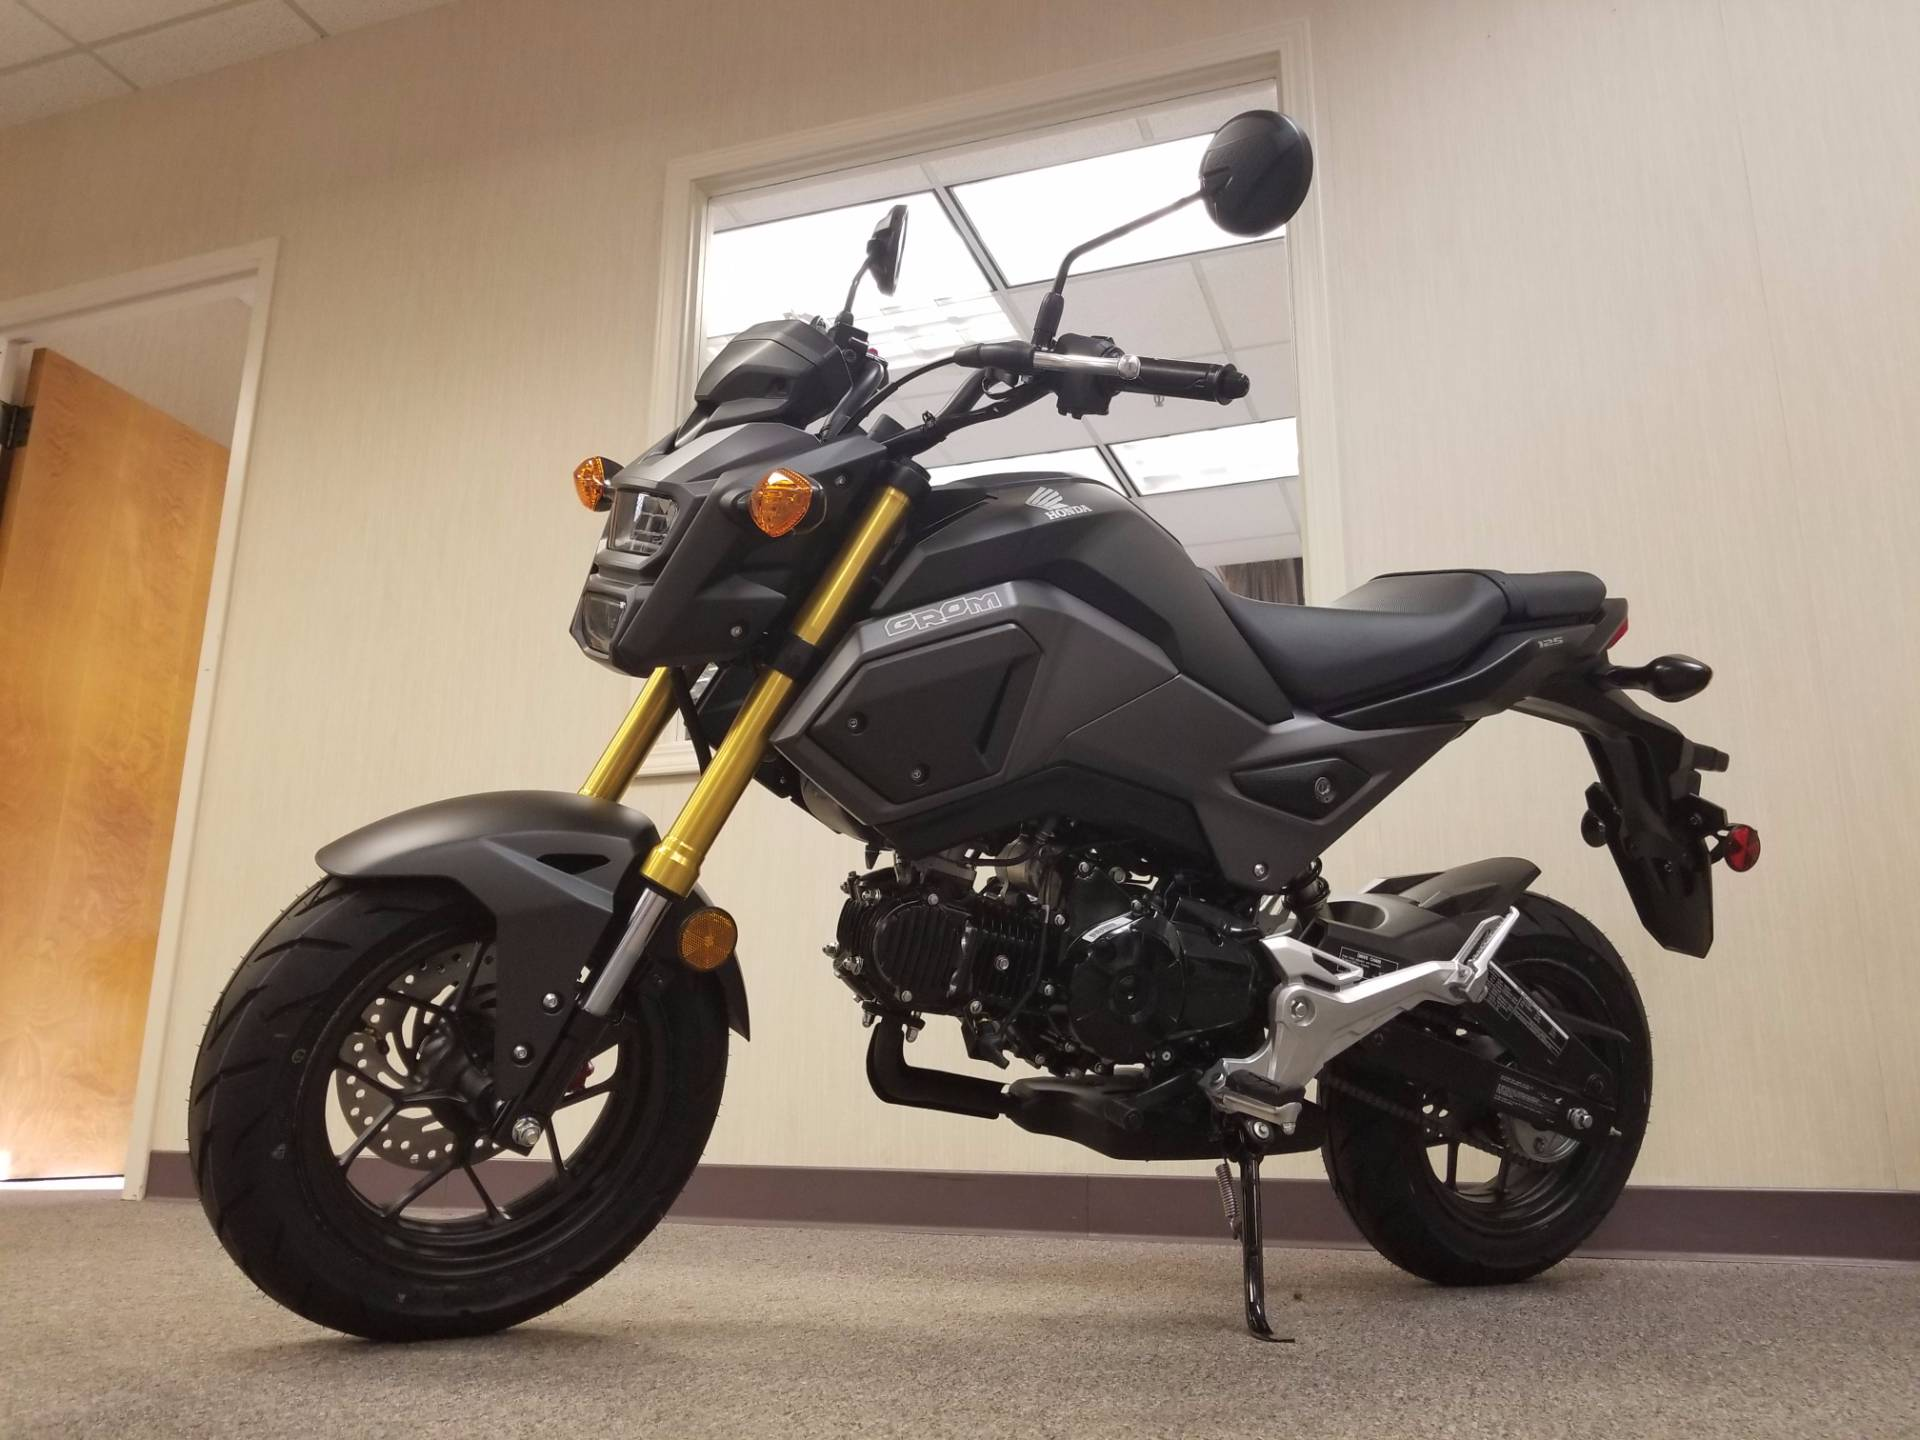 New 2018 Honda Grom Motorcycles in Statesville NC